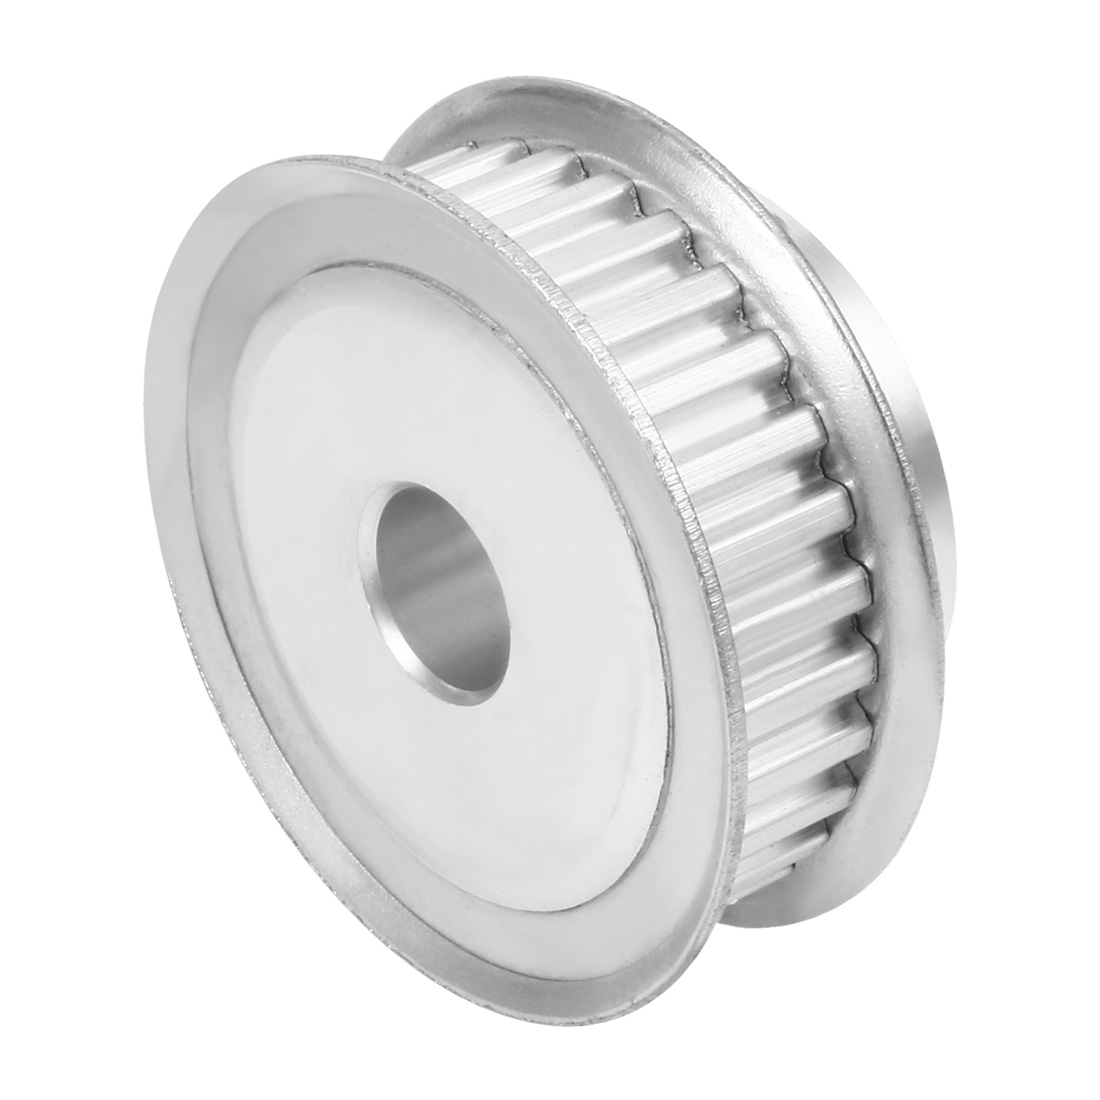 sourcing map Aluminum MXL 60 Teeth 6mm Bore Timing Belt Pulley Synchronous Wheel Silver for 10mm Belt 3D Printer CNC